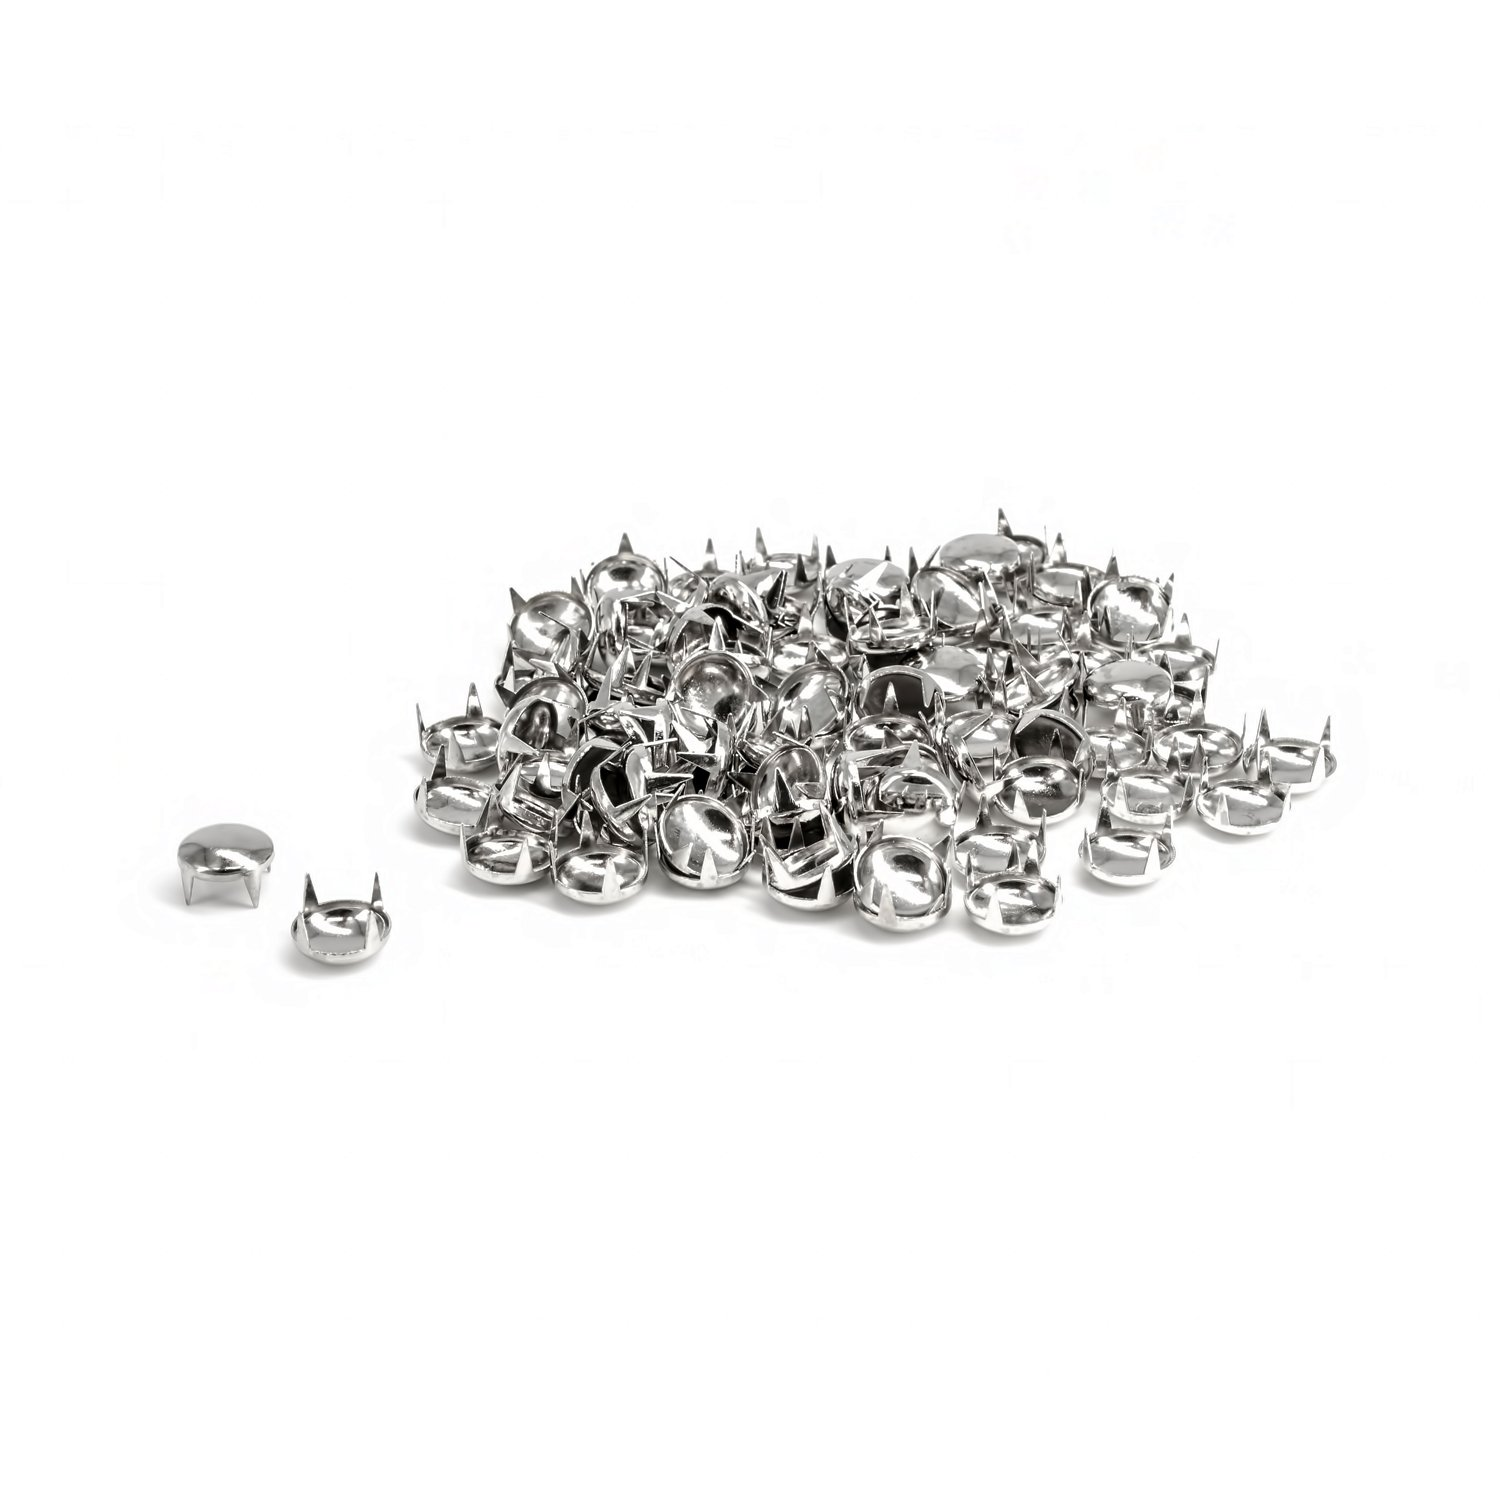 7ecdc4778e 500 x 5mm Silver Studs for Fabric and Leather Crafts - Round Dome Head Stud  - Decorative Accessory for Jeans